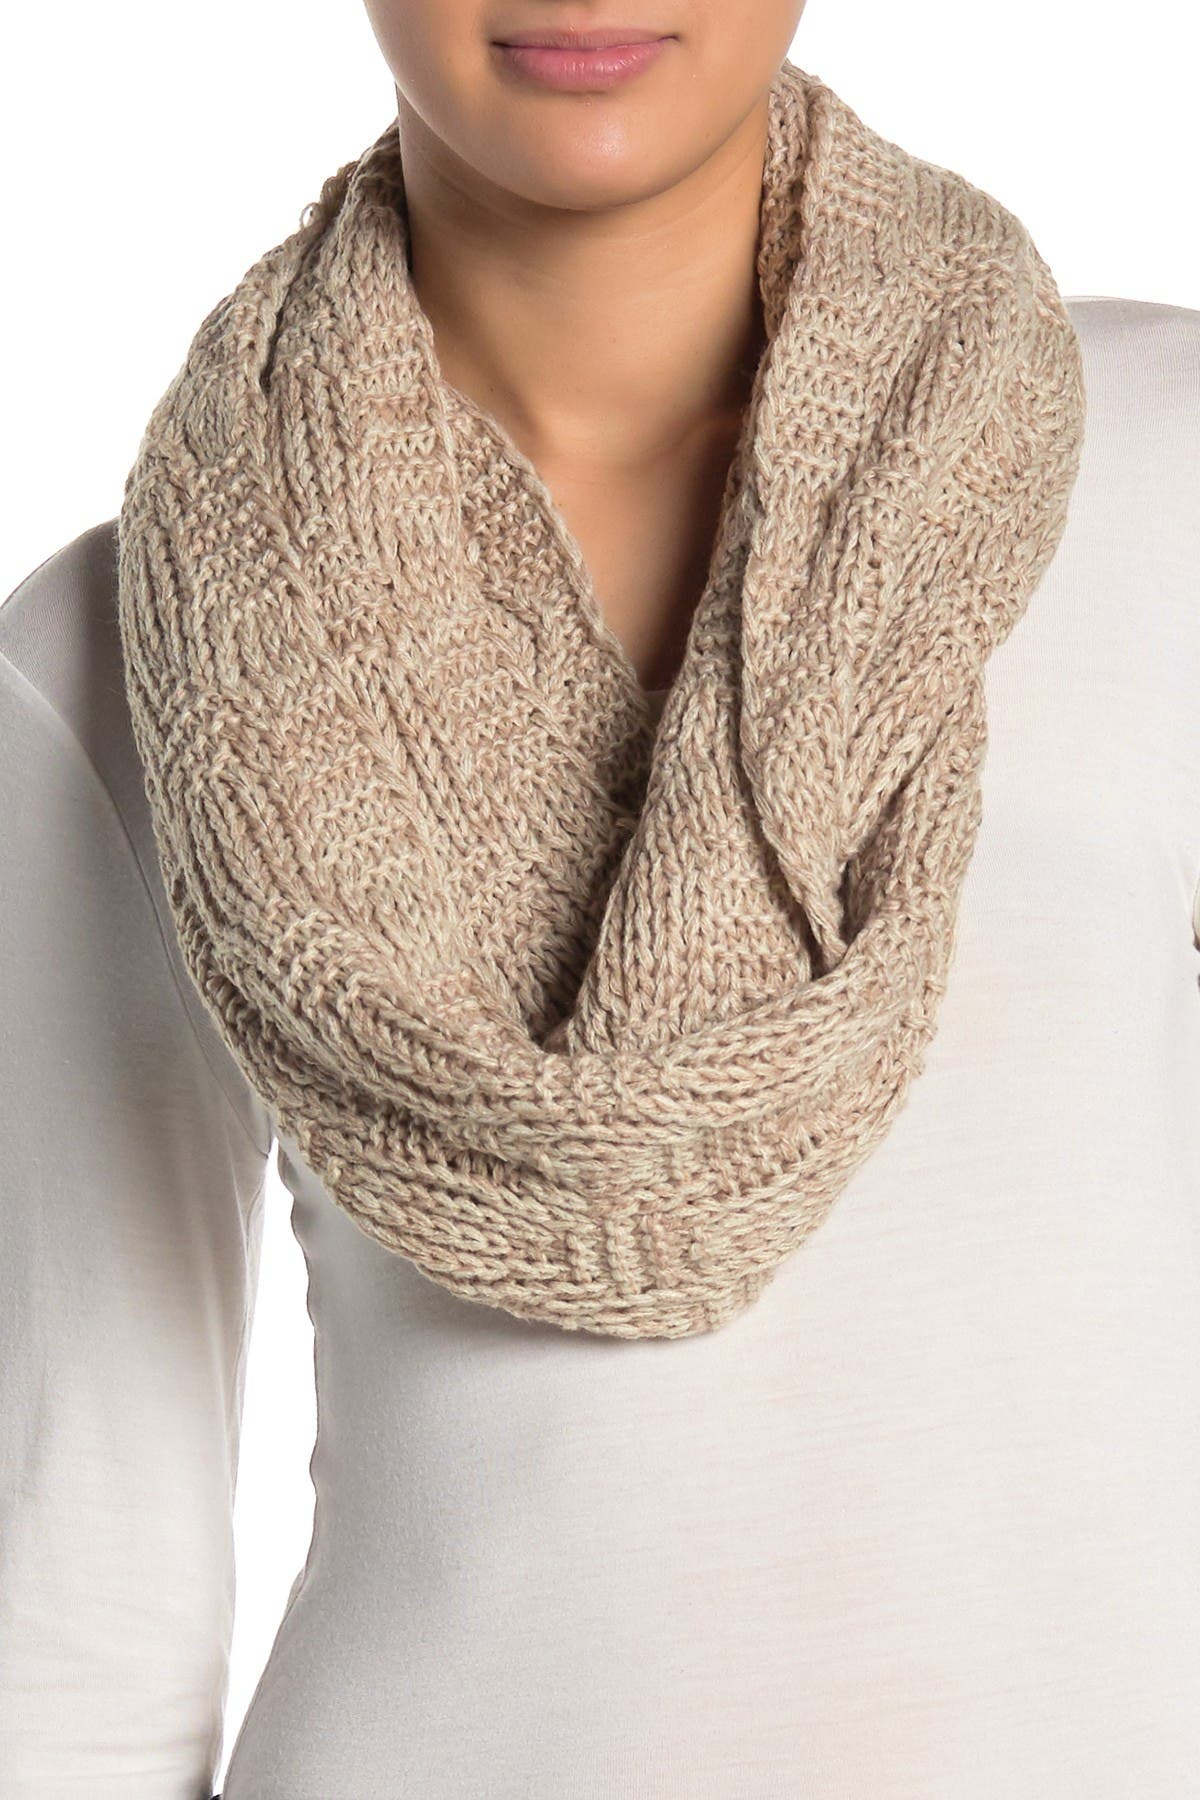 Image of Melrose and Market Cable Knit Infinity Scarf